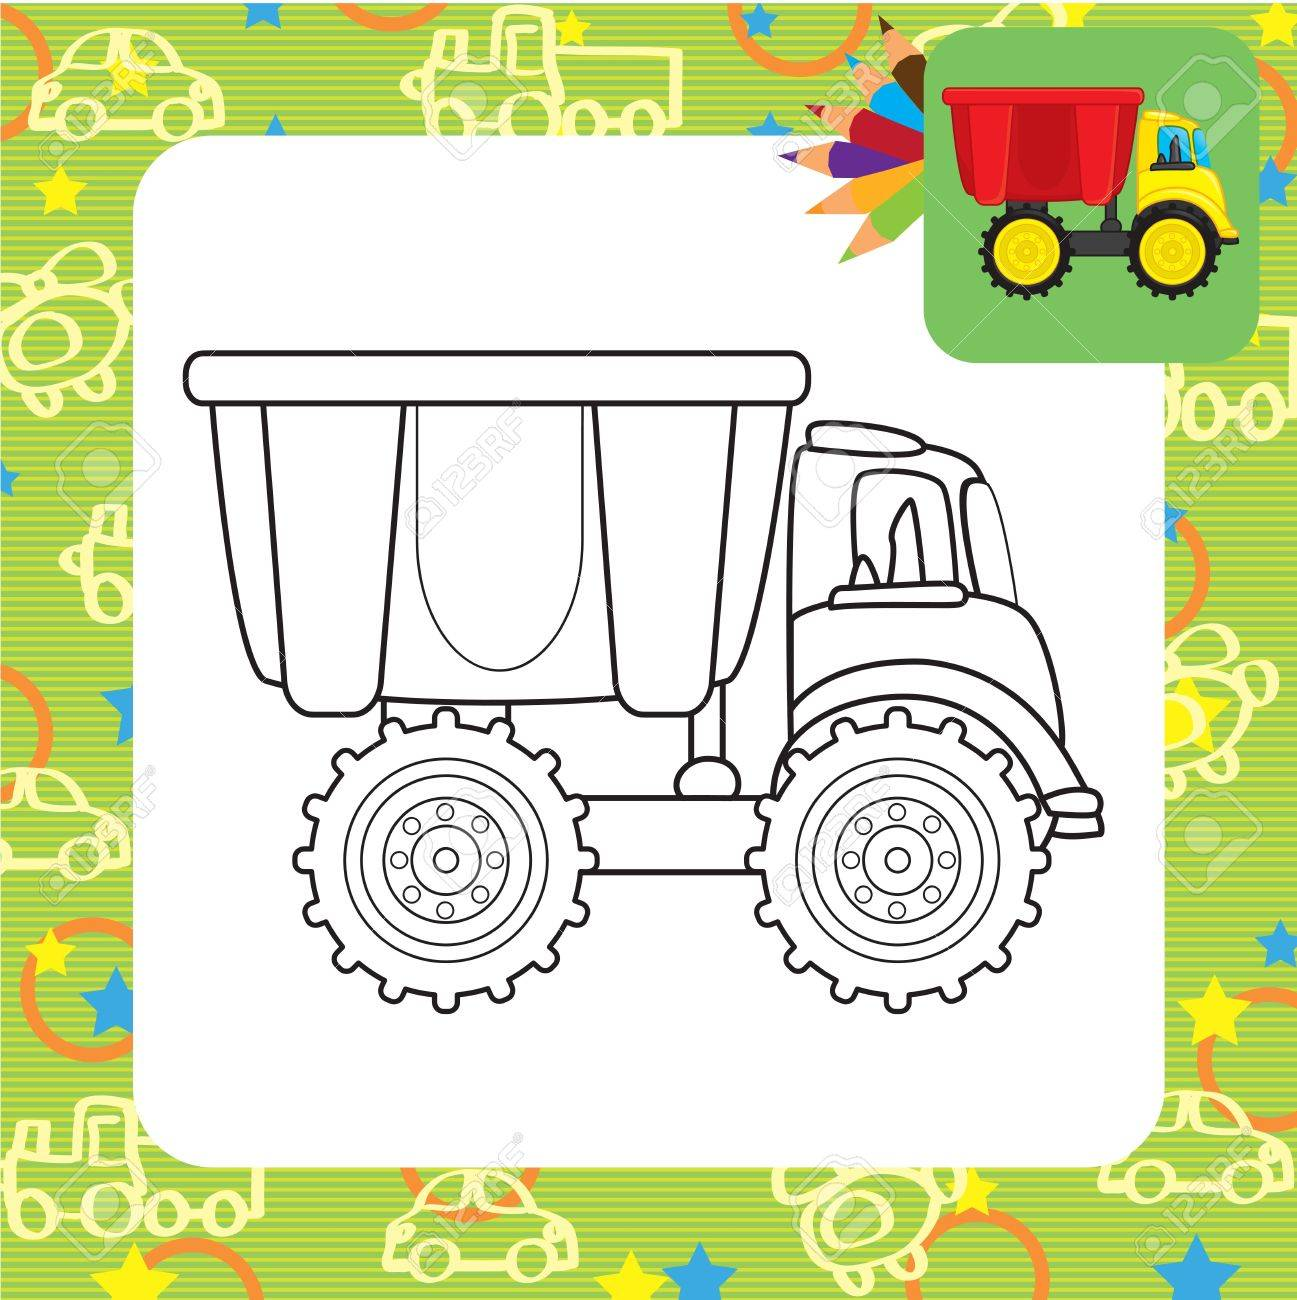 Dump Truck Toy Coloring Page Stock Vector 20172597